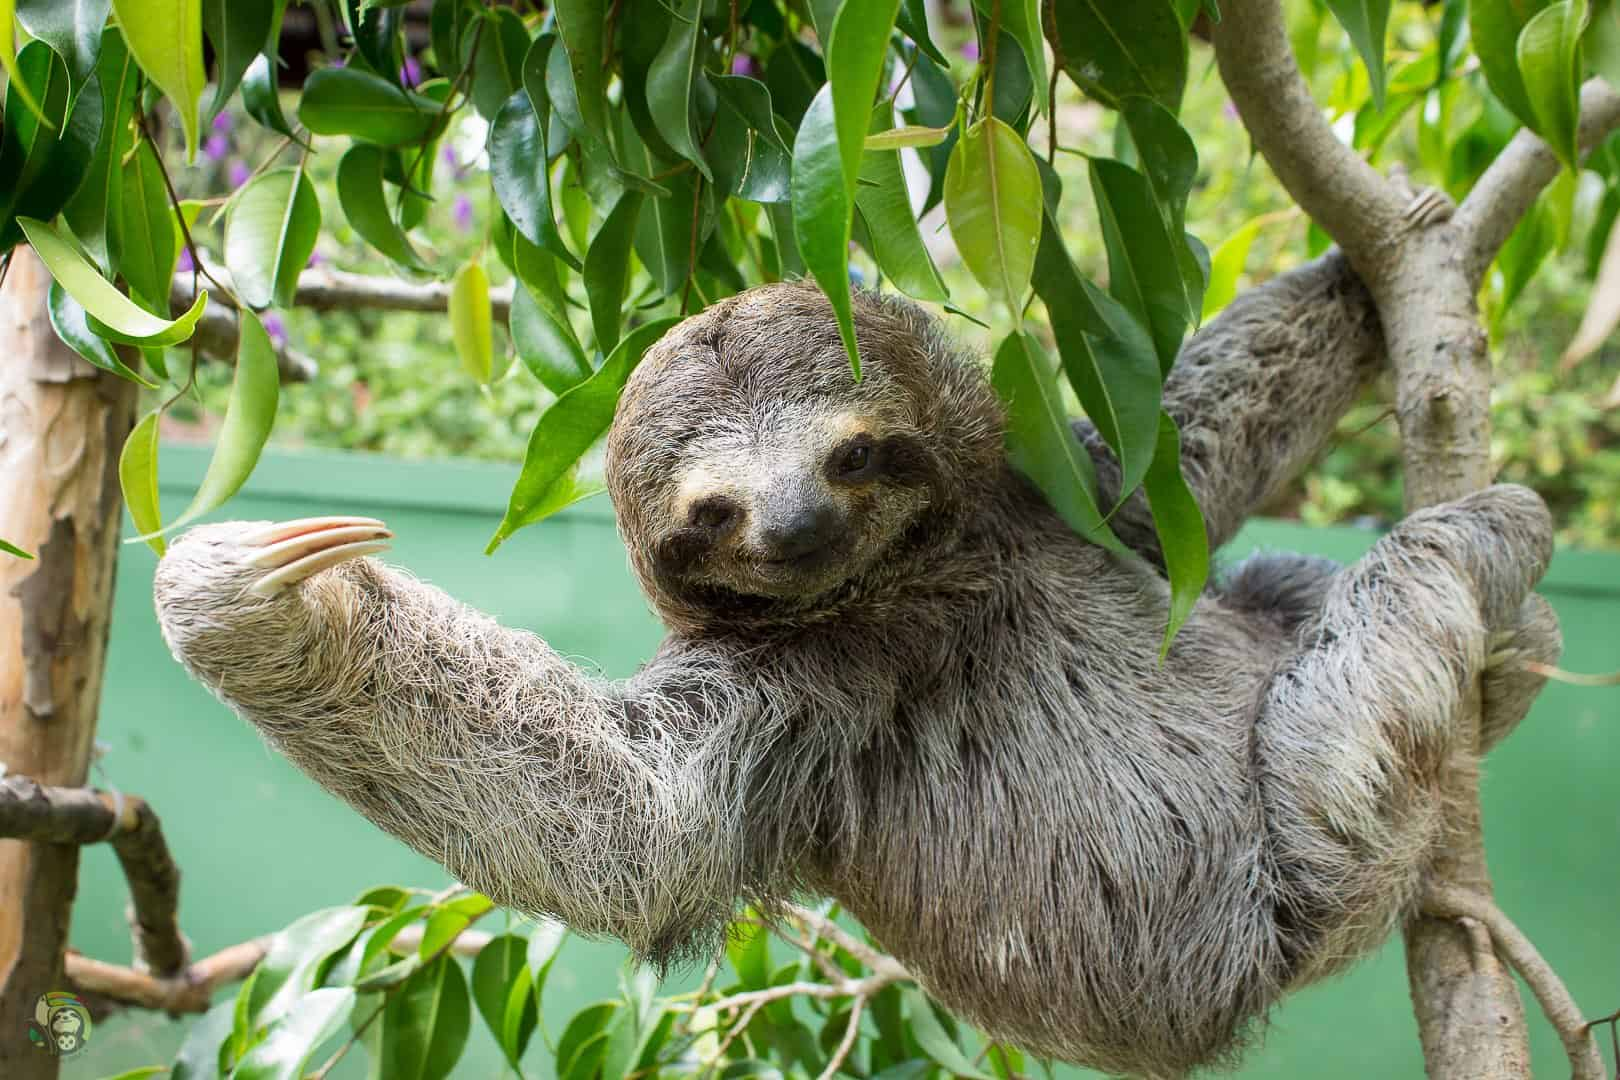 Destiny, a three-toed sloth